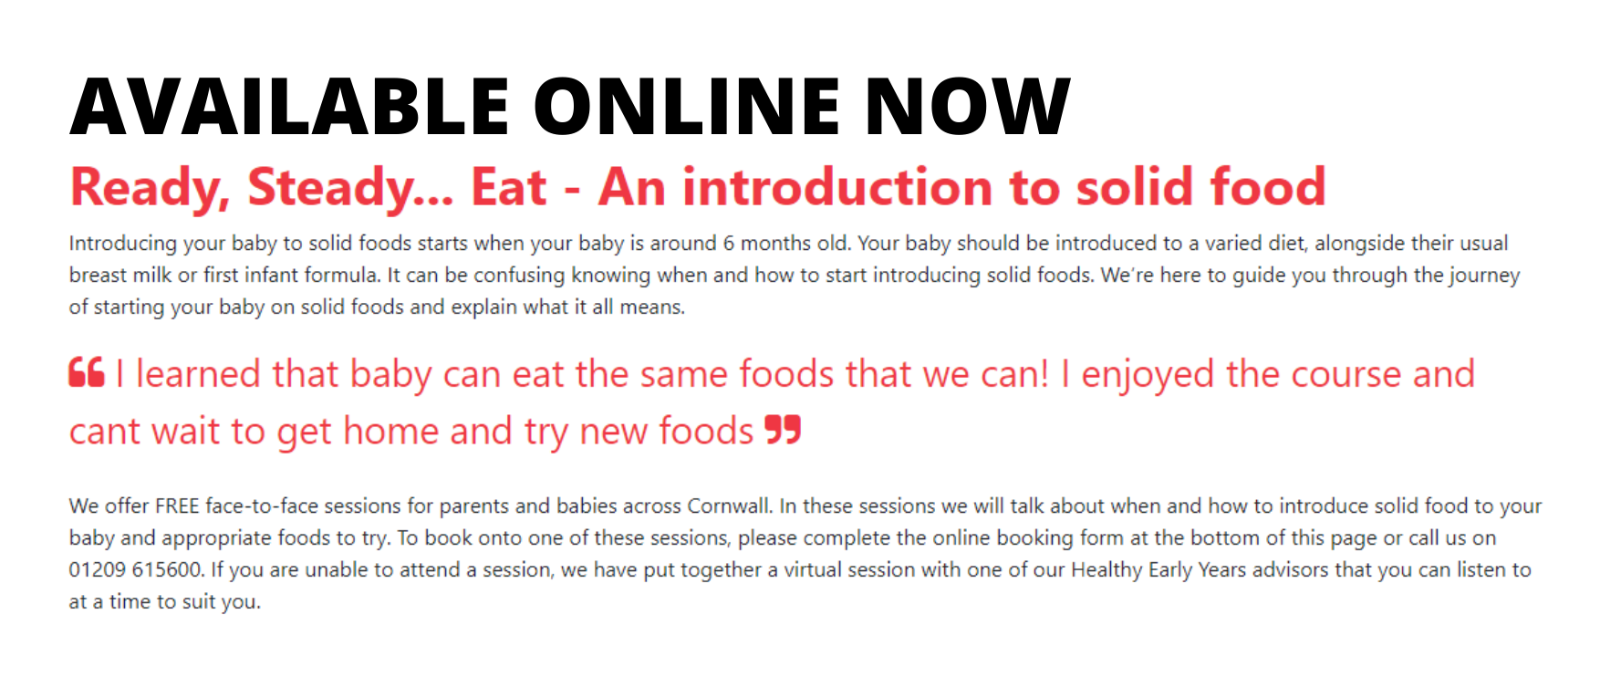 Take the free online ready steady eat course today, for introducing babies to solid foods.